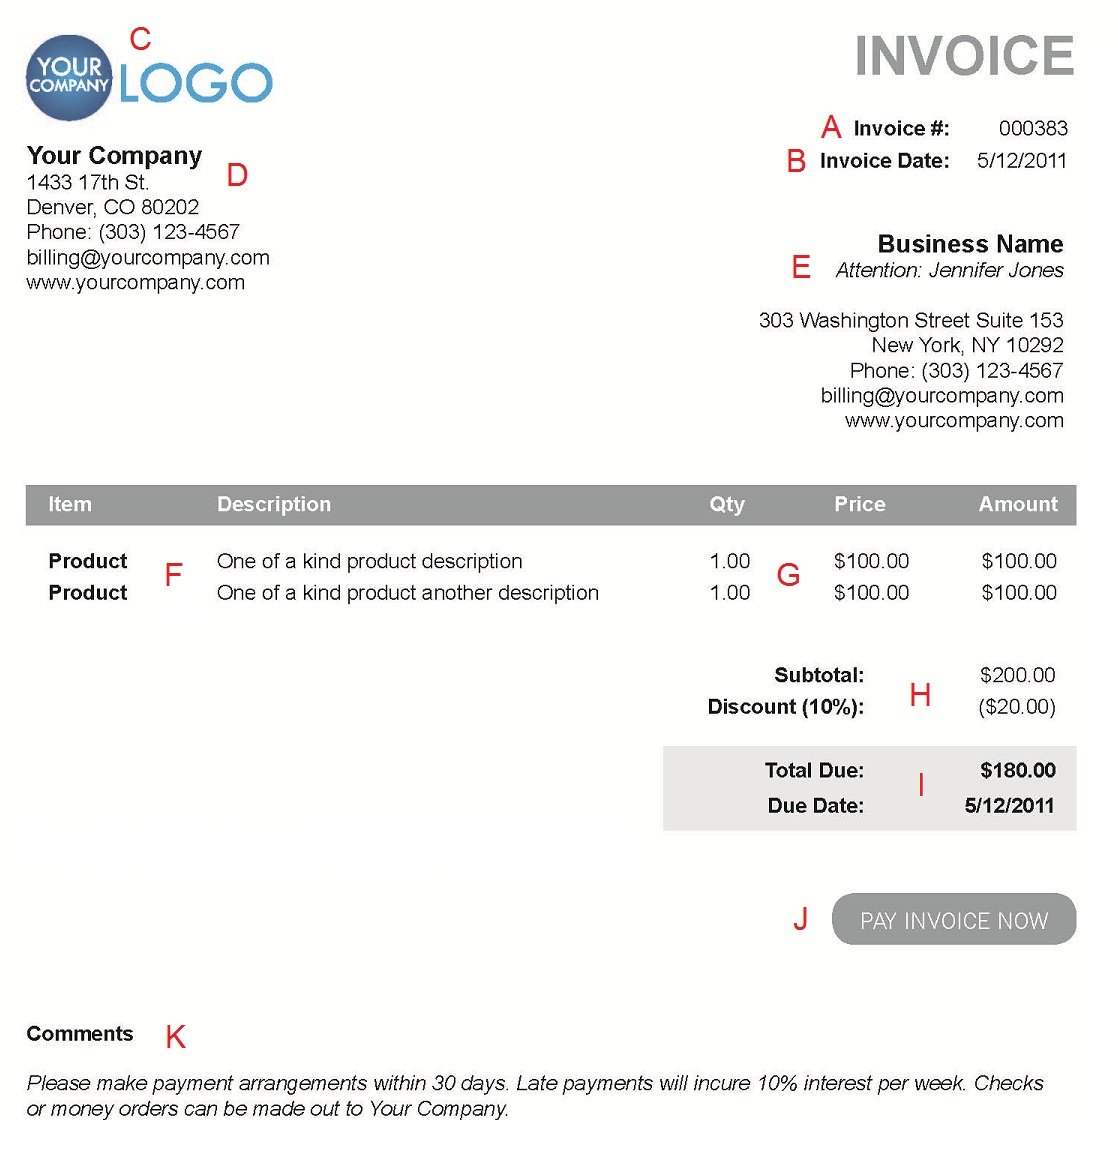 Occupyhistoryus  Inspiring The  Different Sections Of An Electronic Payment Invoice With Magnificent A  With Nice Receipt Tracker Also Due Upon Receipt In Addition Petco Return Policy Without Receipt And Read Receipts Imessage As Well As Best Buy Return Without A Receipt Additionally Receipts Squaretrade Com From Paysimplecom With Occupyhistoryus  Magnificent The  Different Sections Of An Electronic Payment Invoice With Nice A  And Inspiring Receipt Tracker Also Due Upon Receipt In Addition Petco Return Policy Without Receipt From Paysimplecom